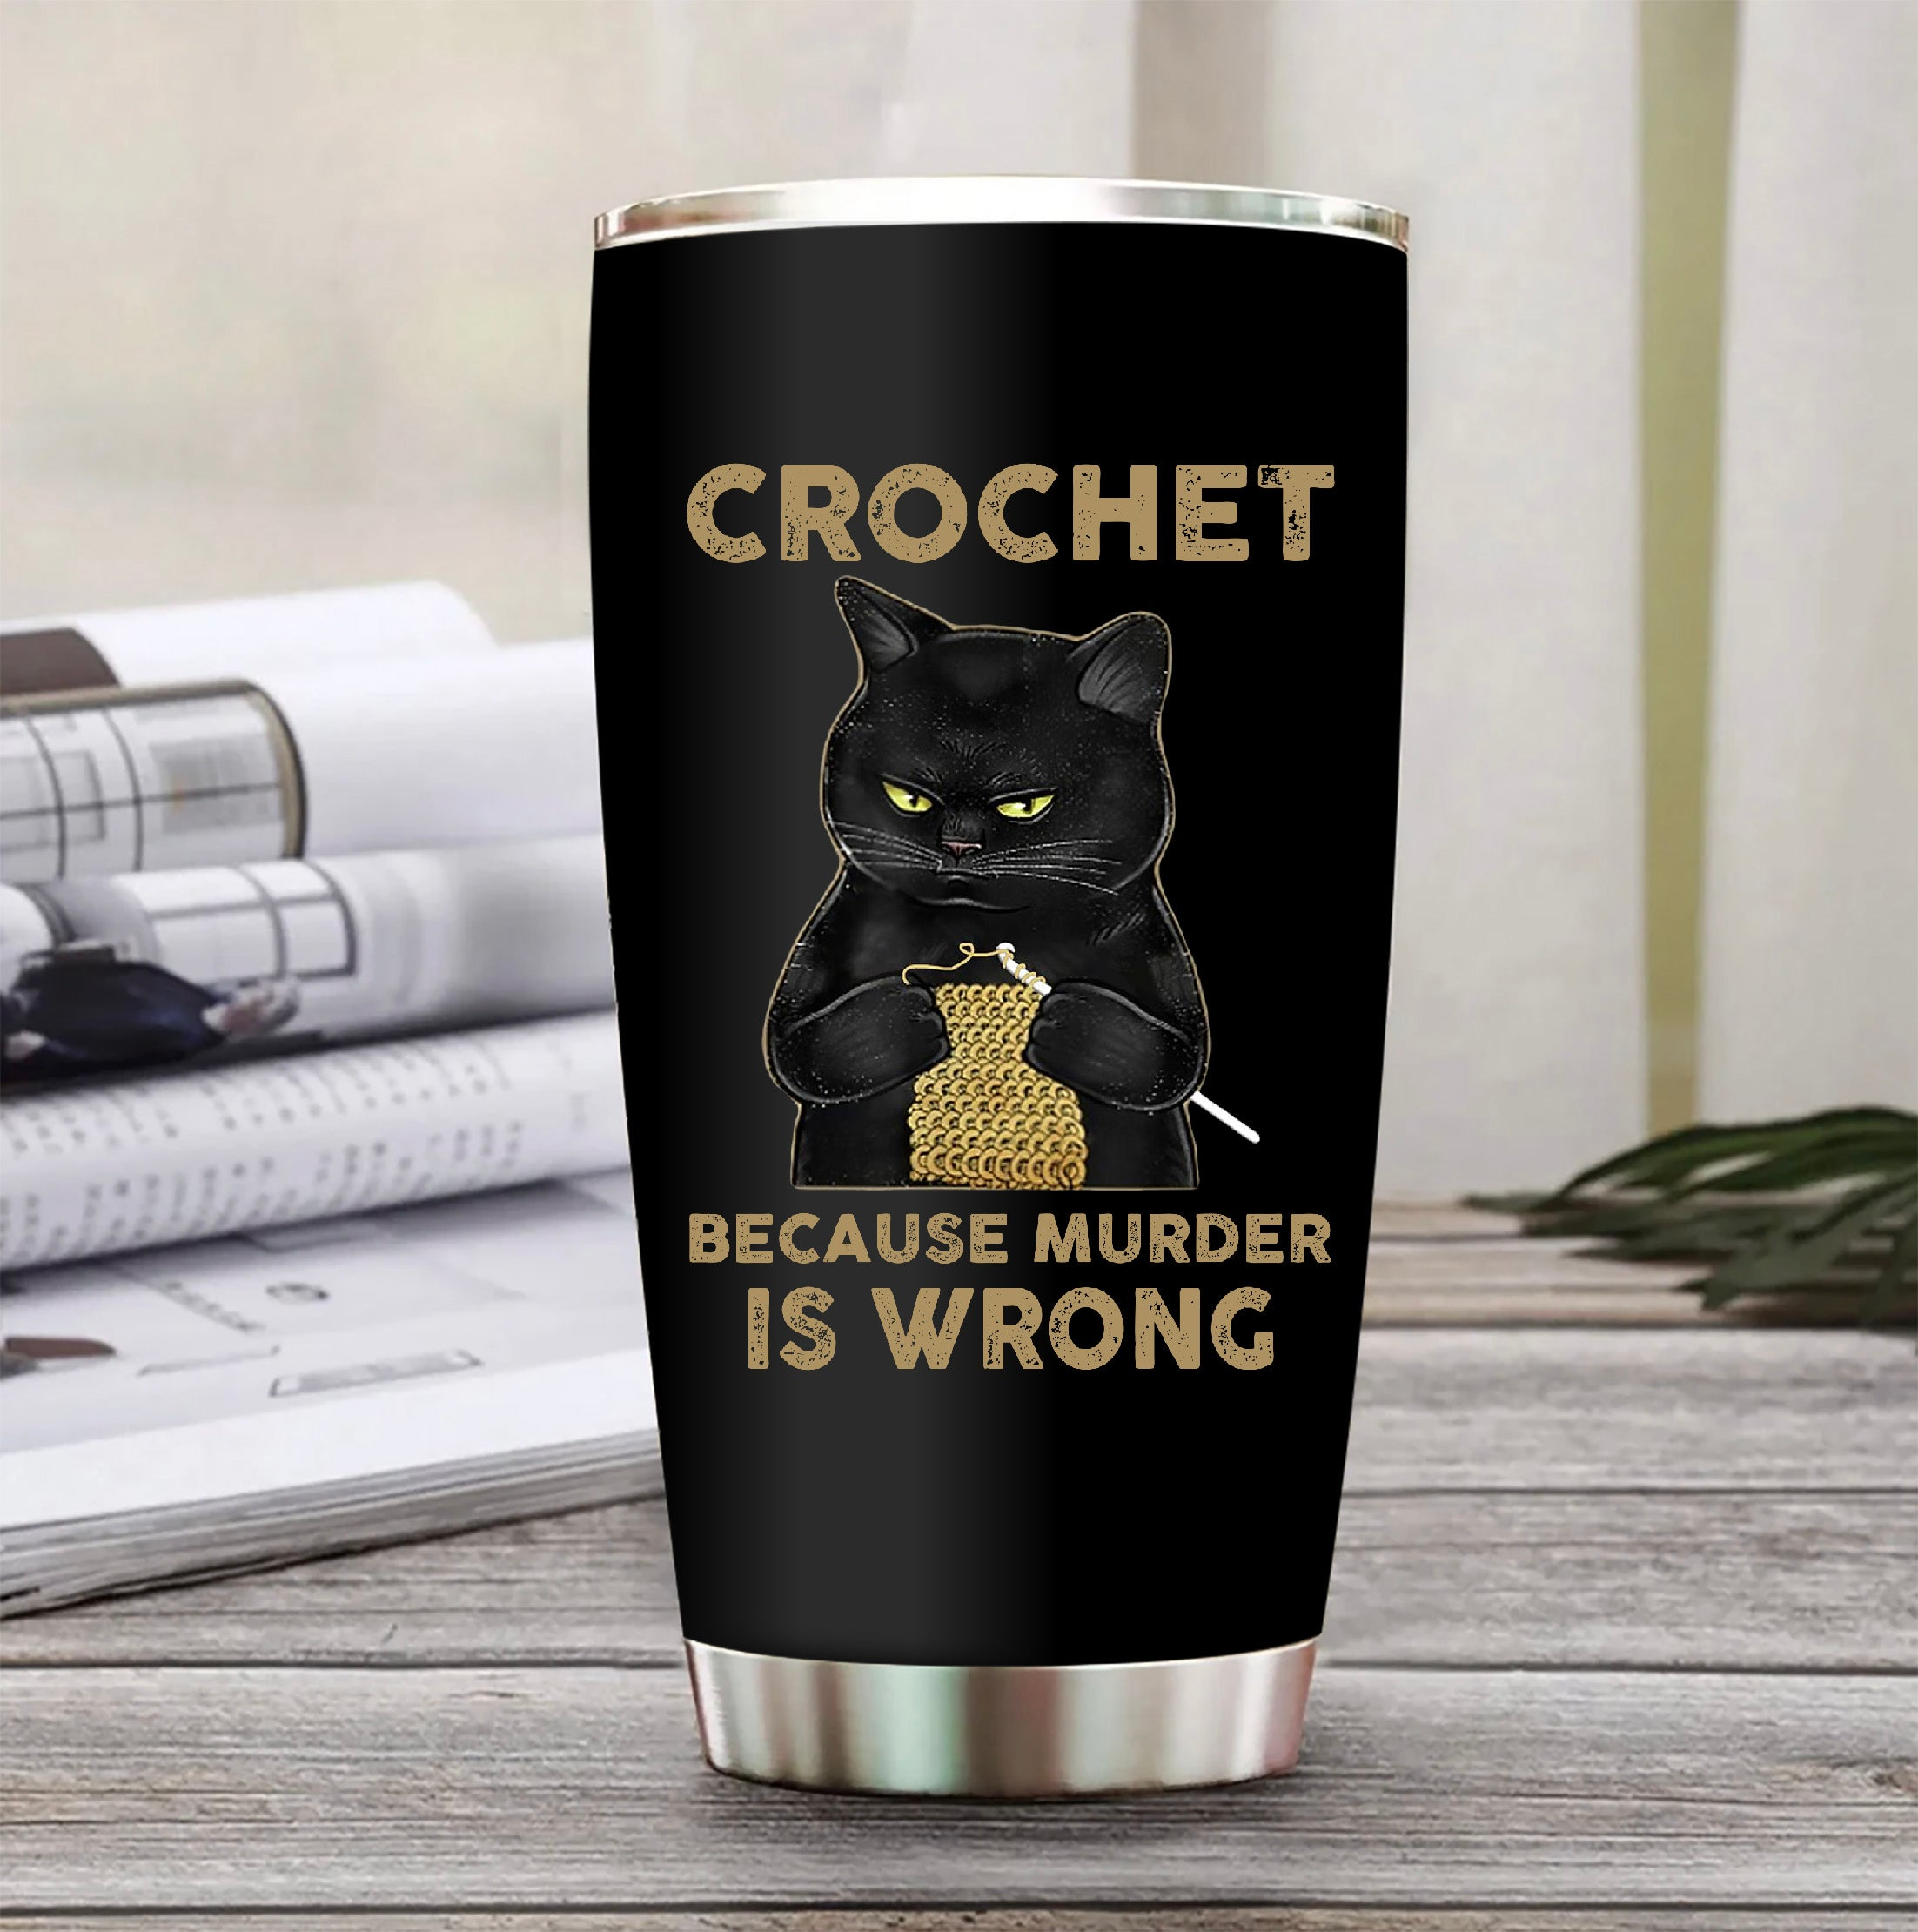 Crochet Because Murder Is Wrong Tumbler